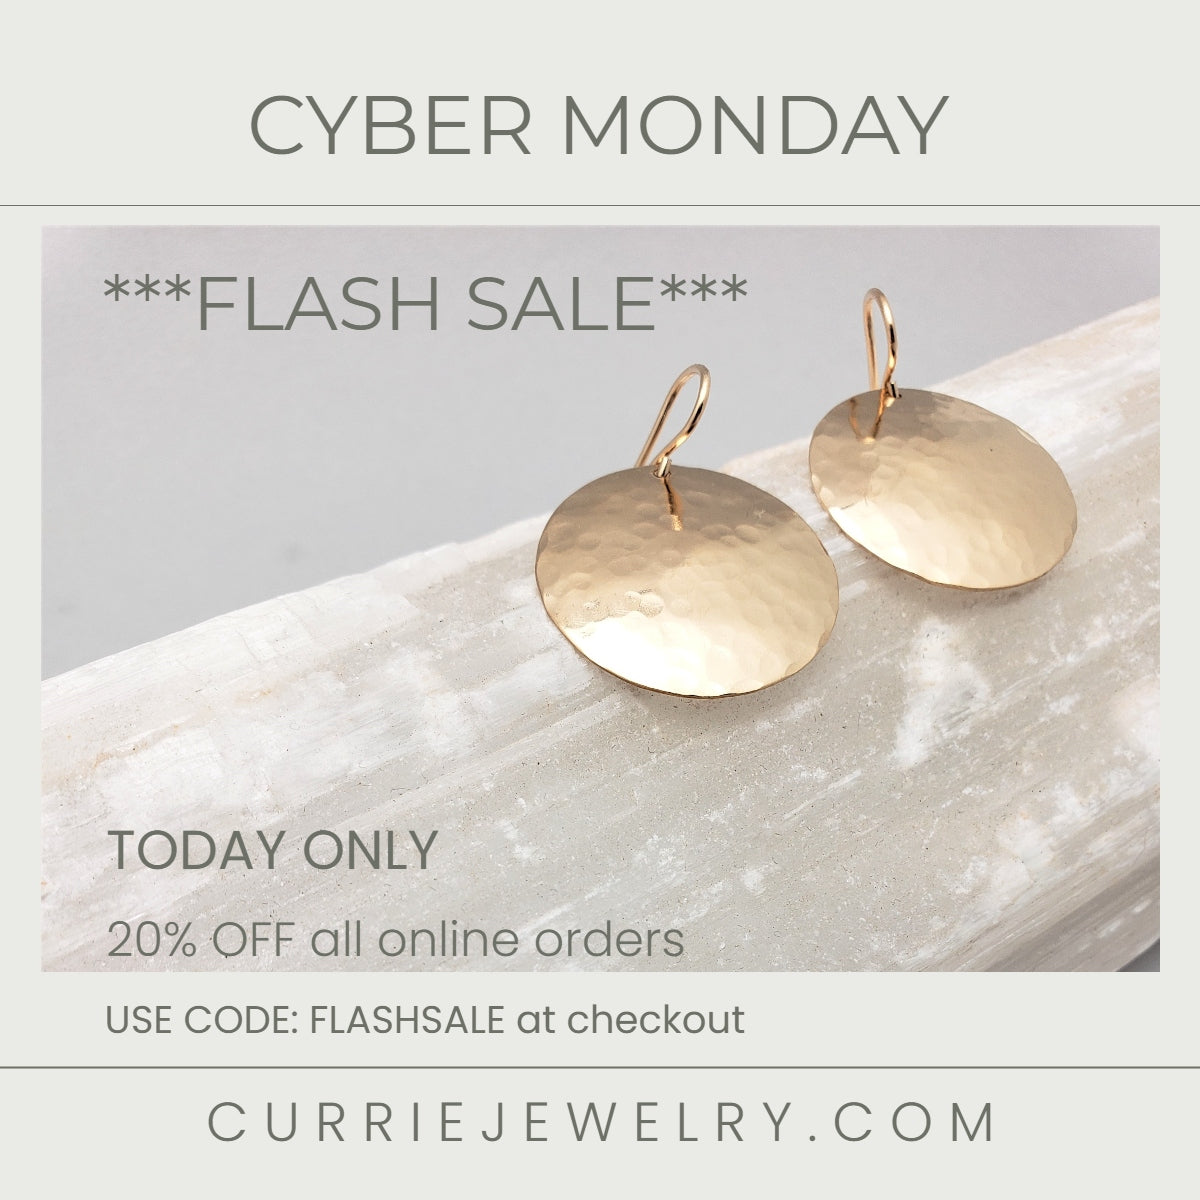 CYBER MONDAY 20% OFF ONLINE ORDERS